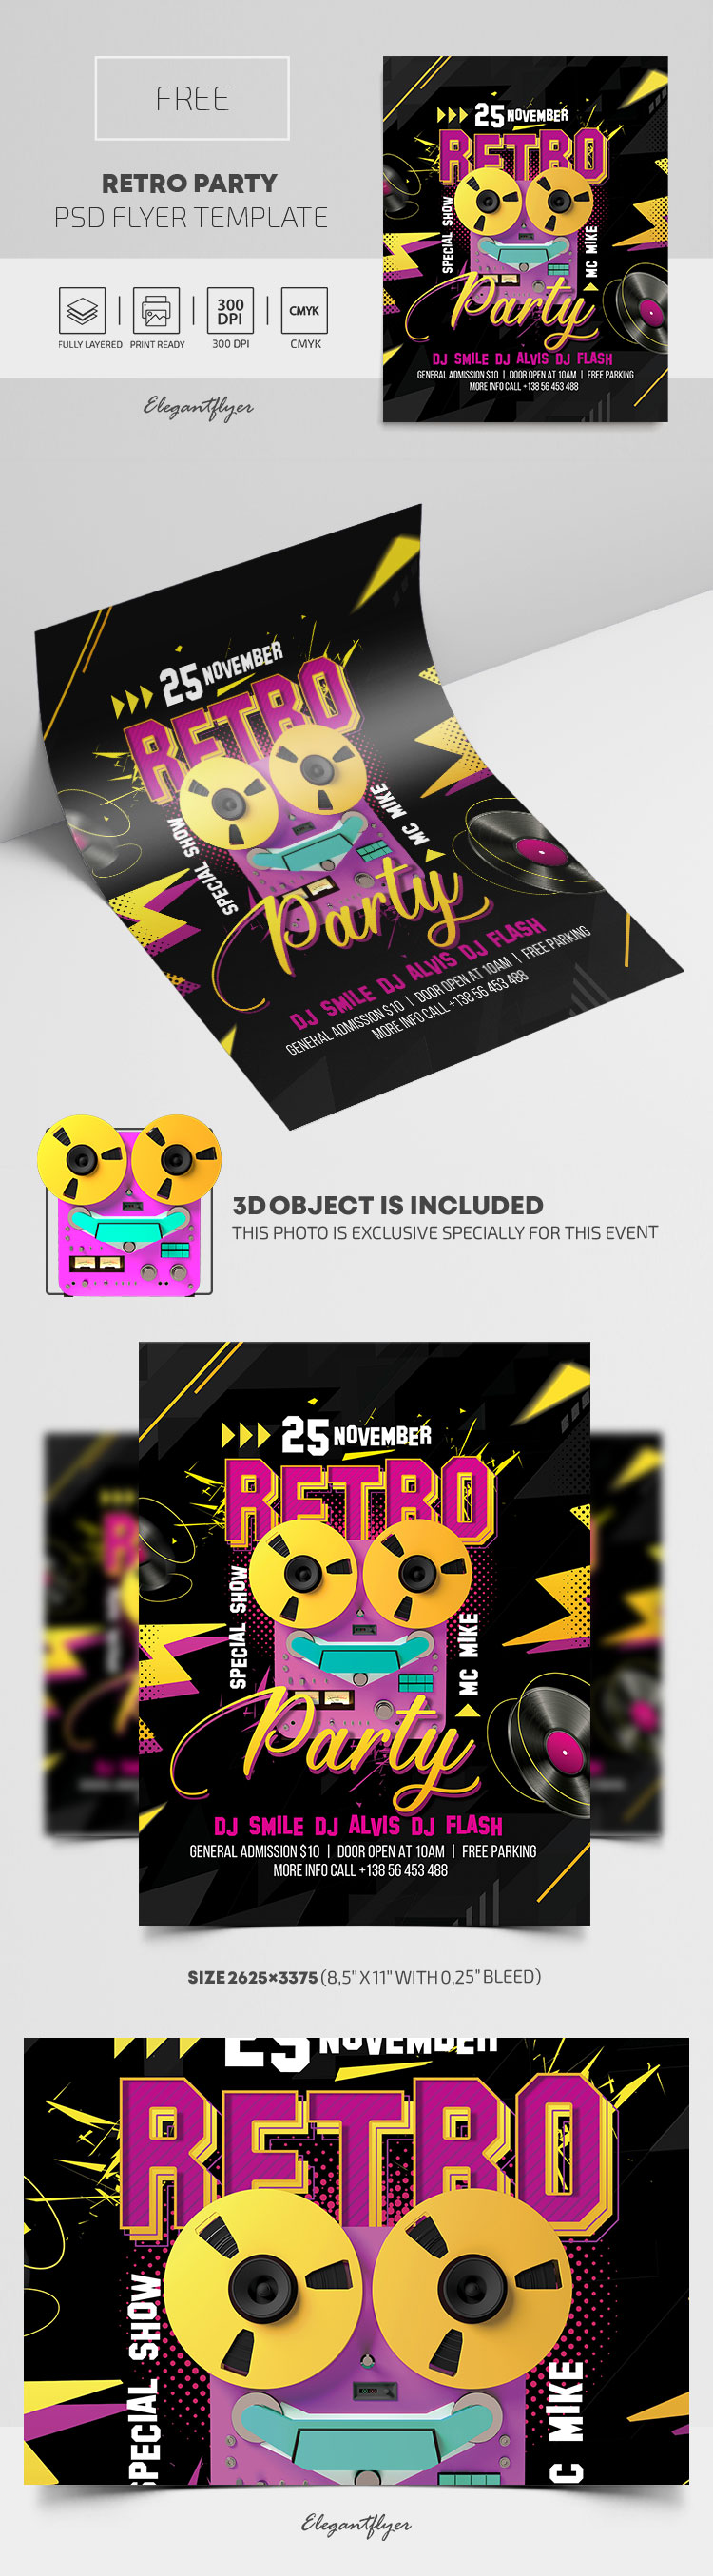 Retro Party Event- Free PSD Flyer Template